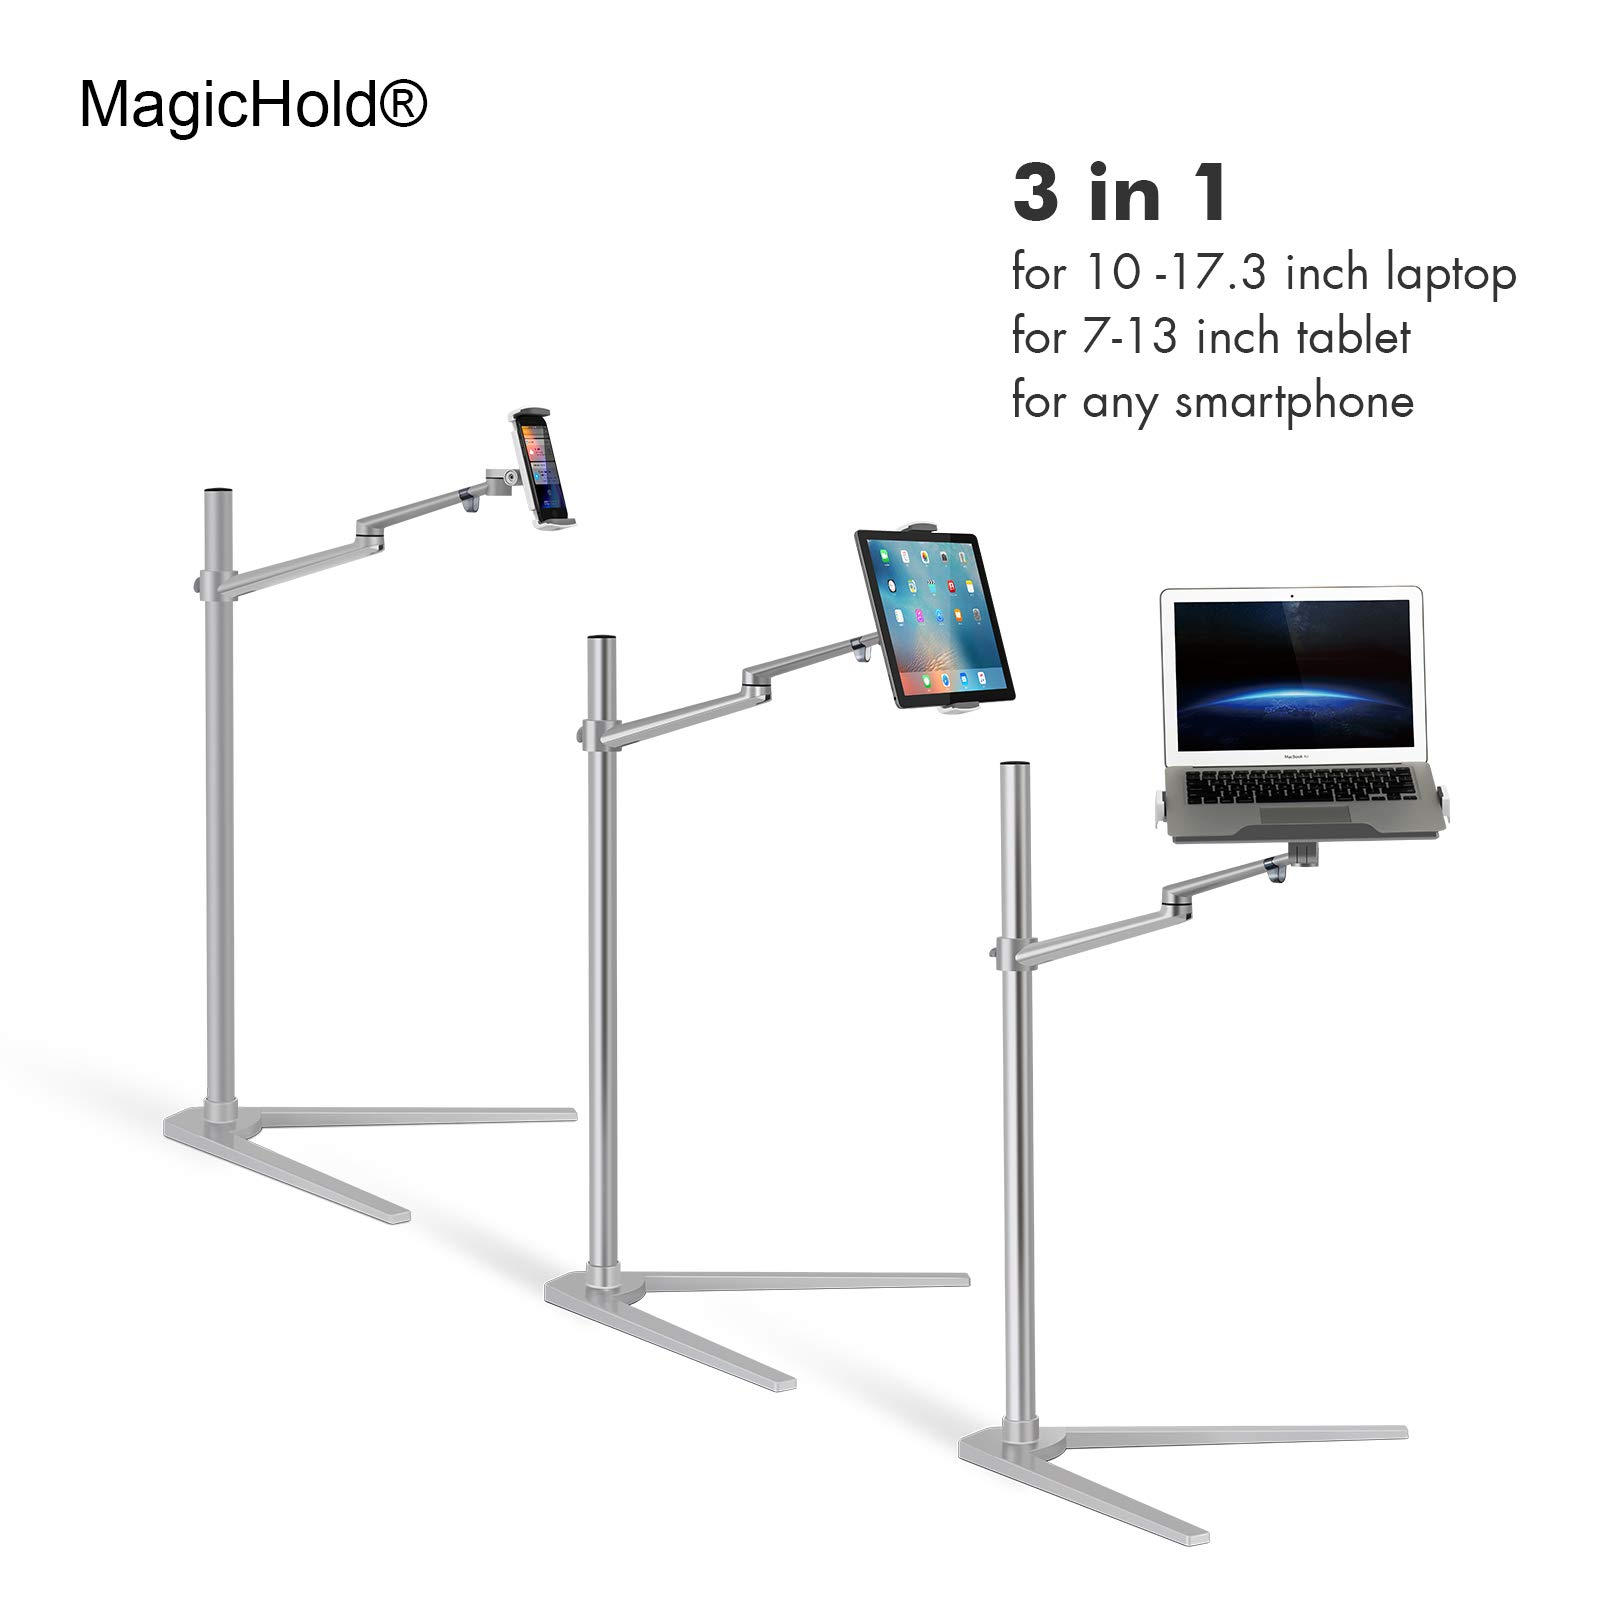 MagicHold 3 in 1 360º Rotating Height Adjusting Laptop Stand/ Ipad Pro 12.9''/iPAD iPAD mini / Tablet Bed floor Stand for Laptop(13-15.6 inch) by Nexstand